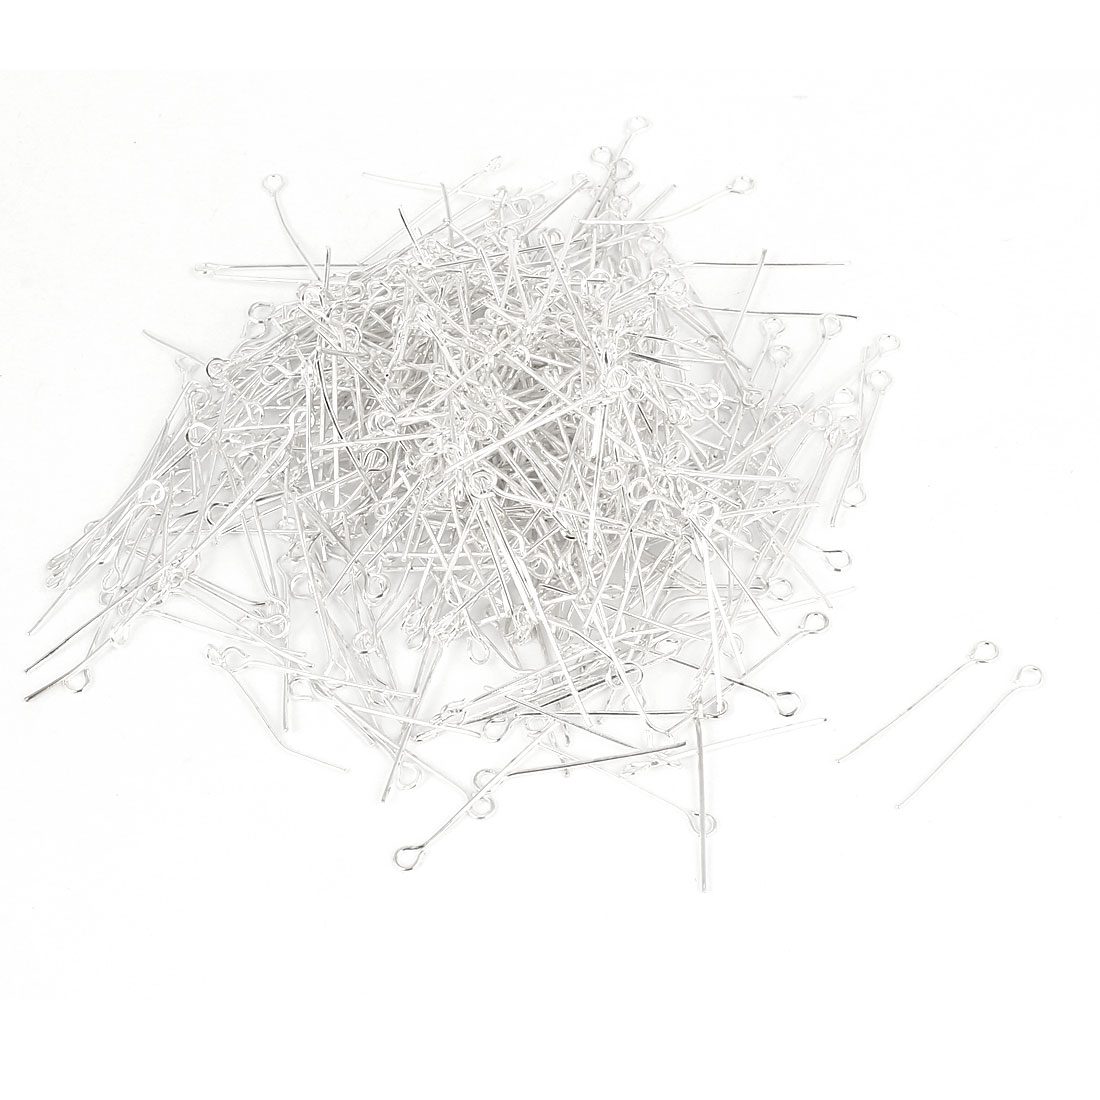 660 Pcs 26mm Silver Tone Metal Eye Pins Eyepins Jewelry Craft Findings